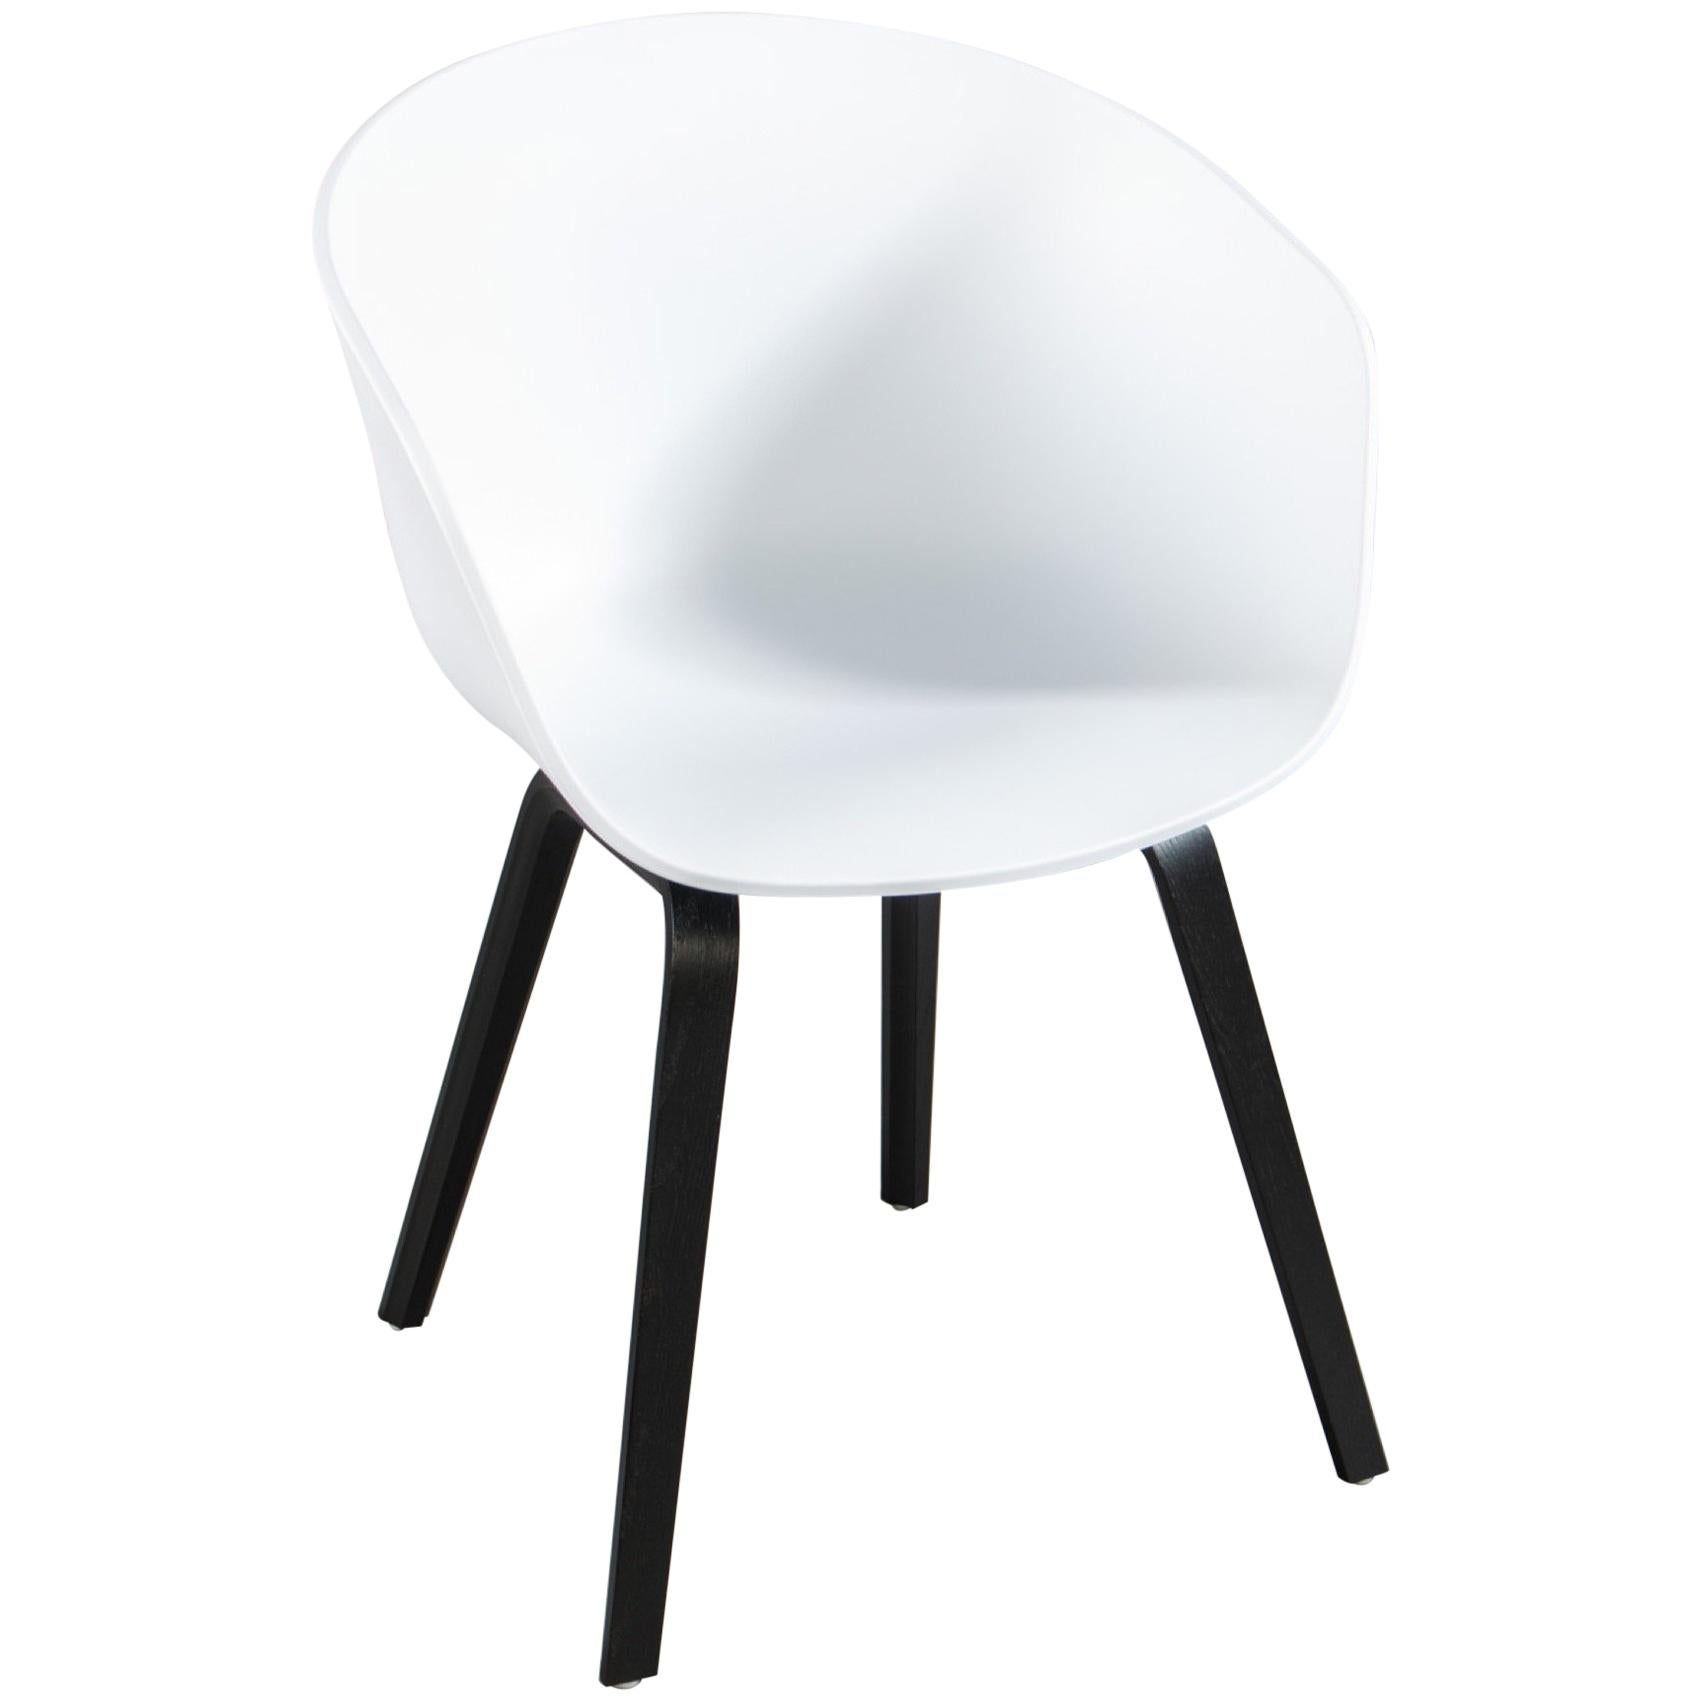 Hee Welling 'About a Chair' Lounge Chair for Hay